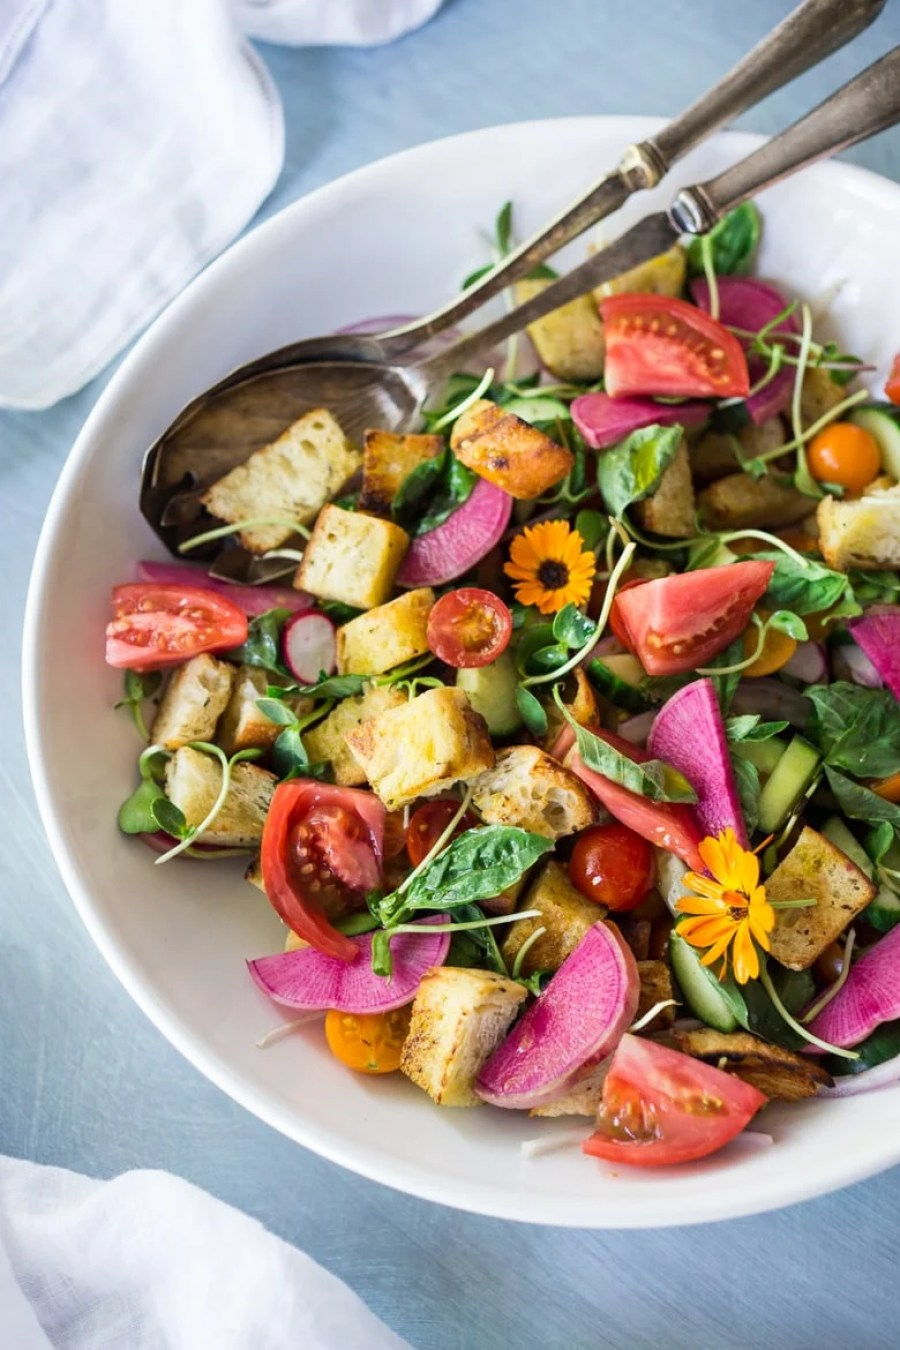 The BEST EVER Summer Panzanella Salad with Garlicky Croutons, bursting with fresh seasonal summer ingredients and FLAVOR! | www.feastingathome.com